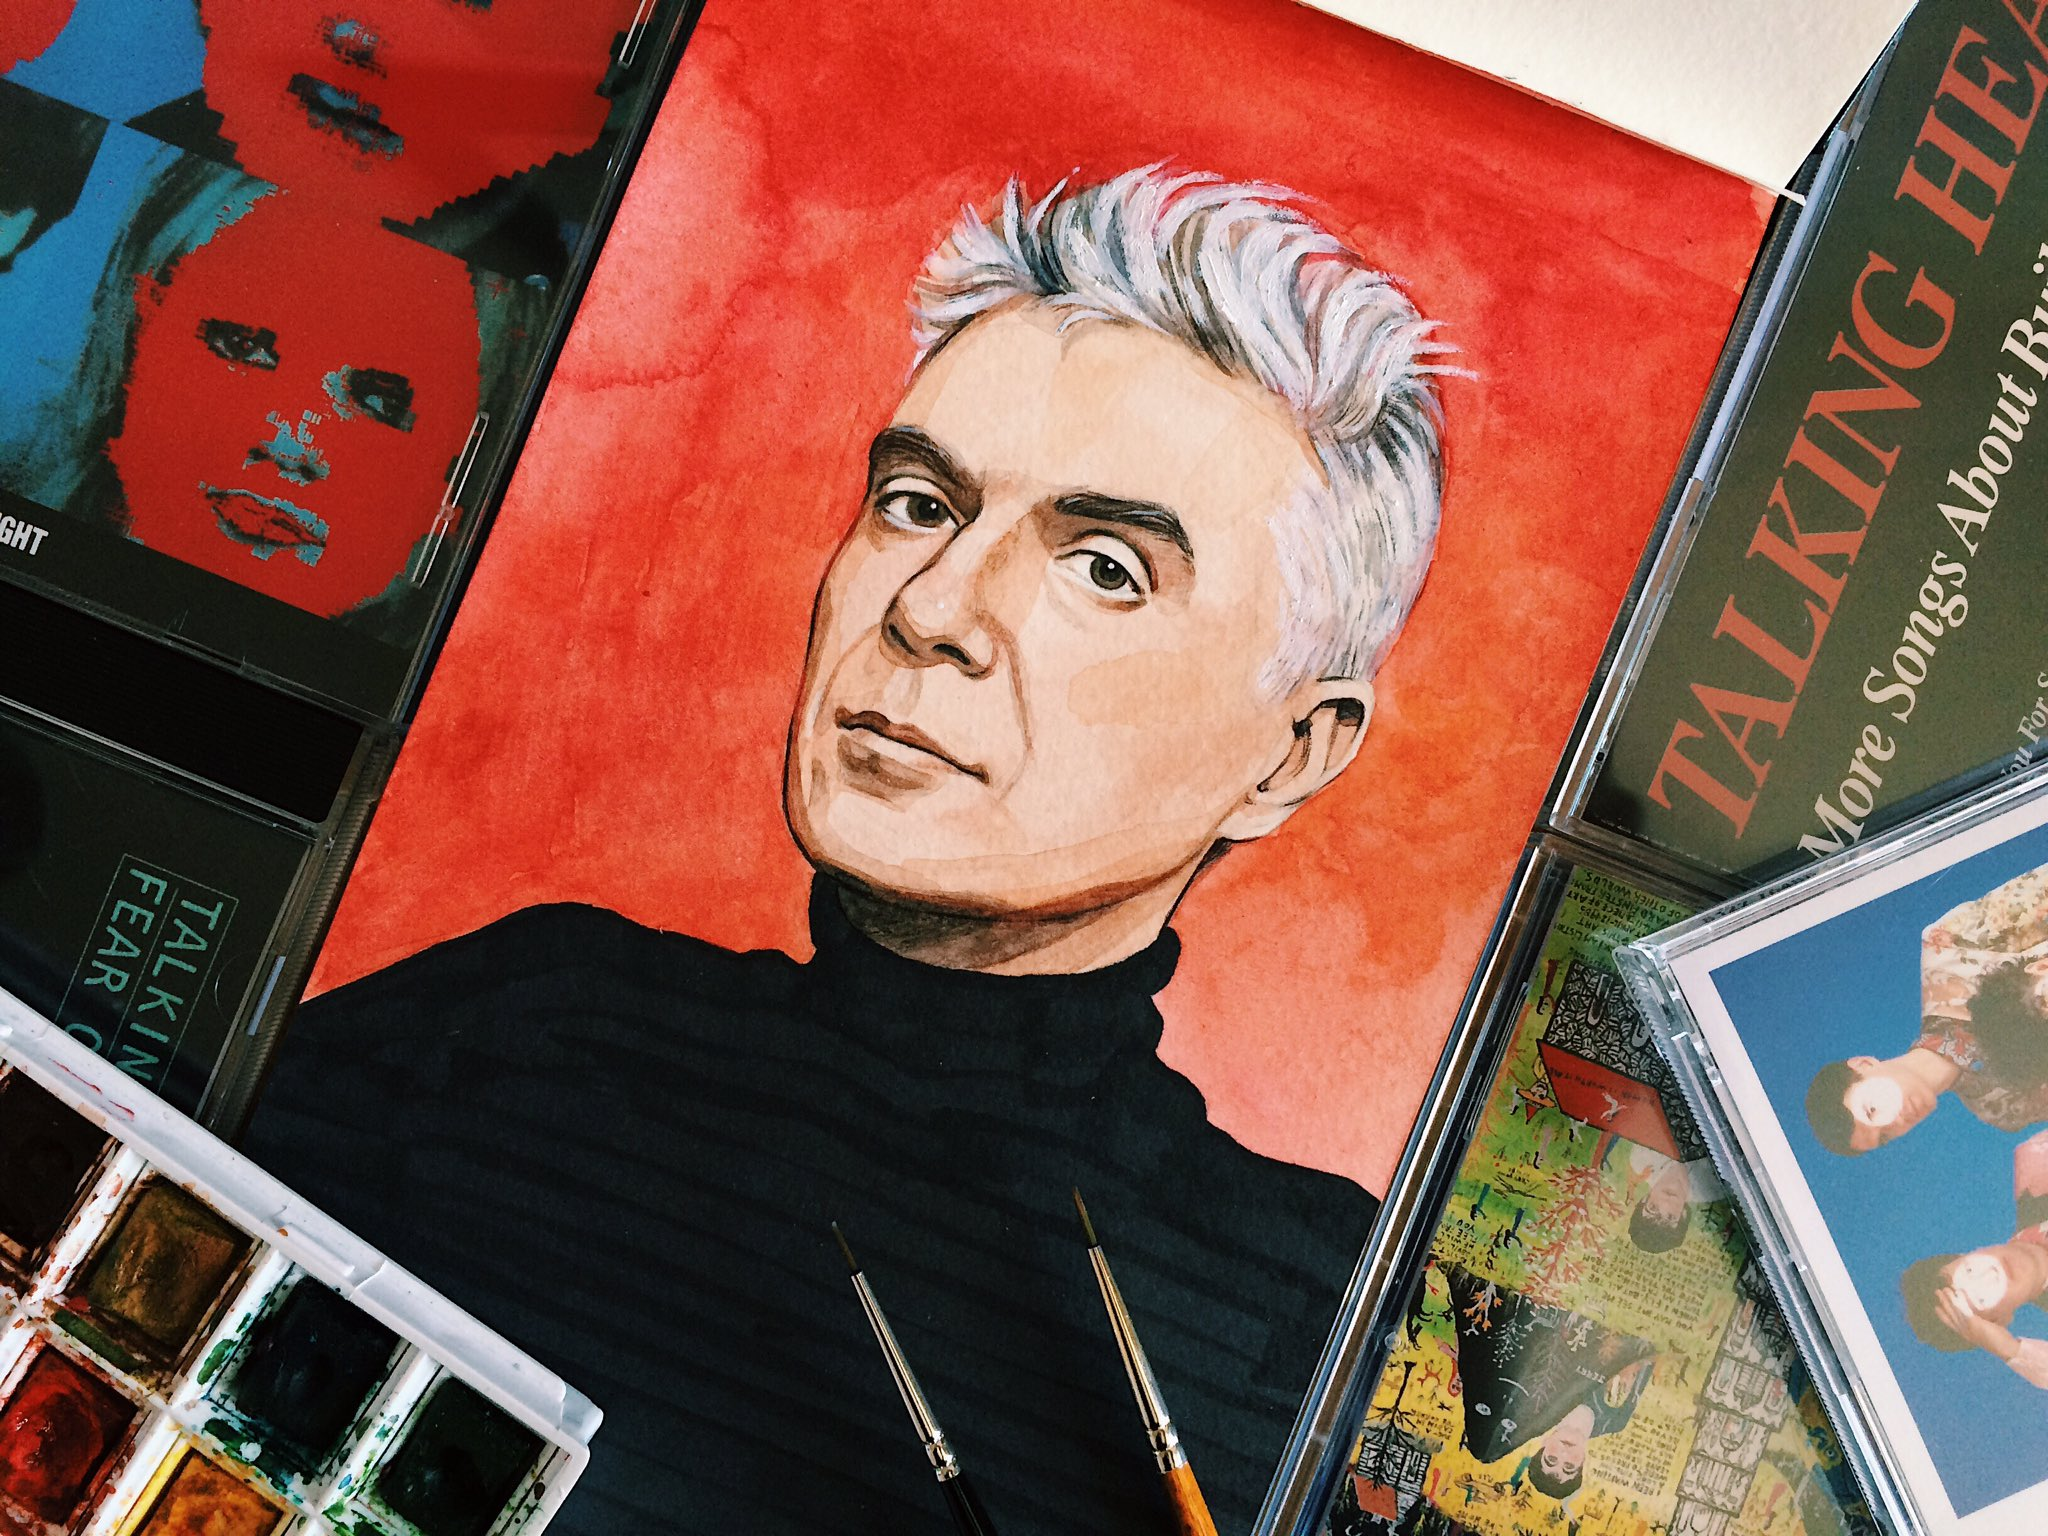 Happy 65th birthday to the brilliant David Byrne! (a long overdue portrait)